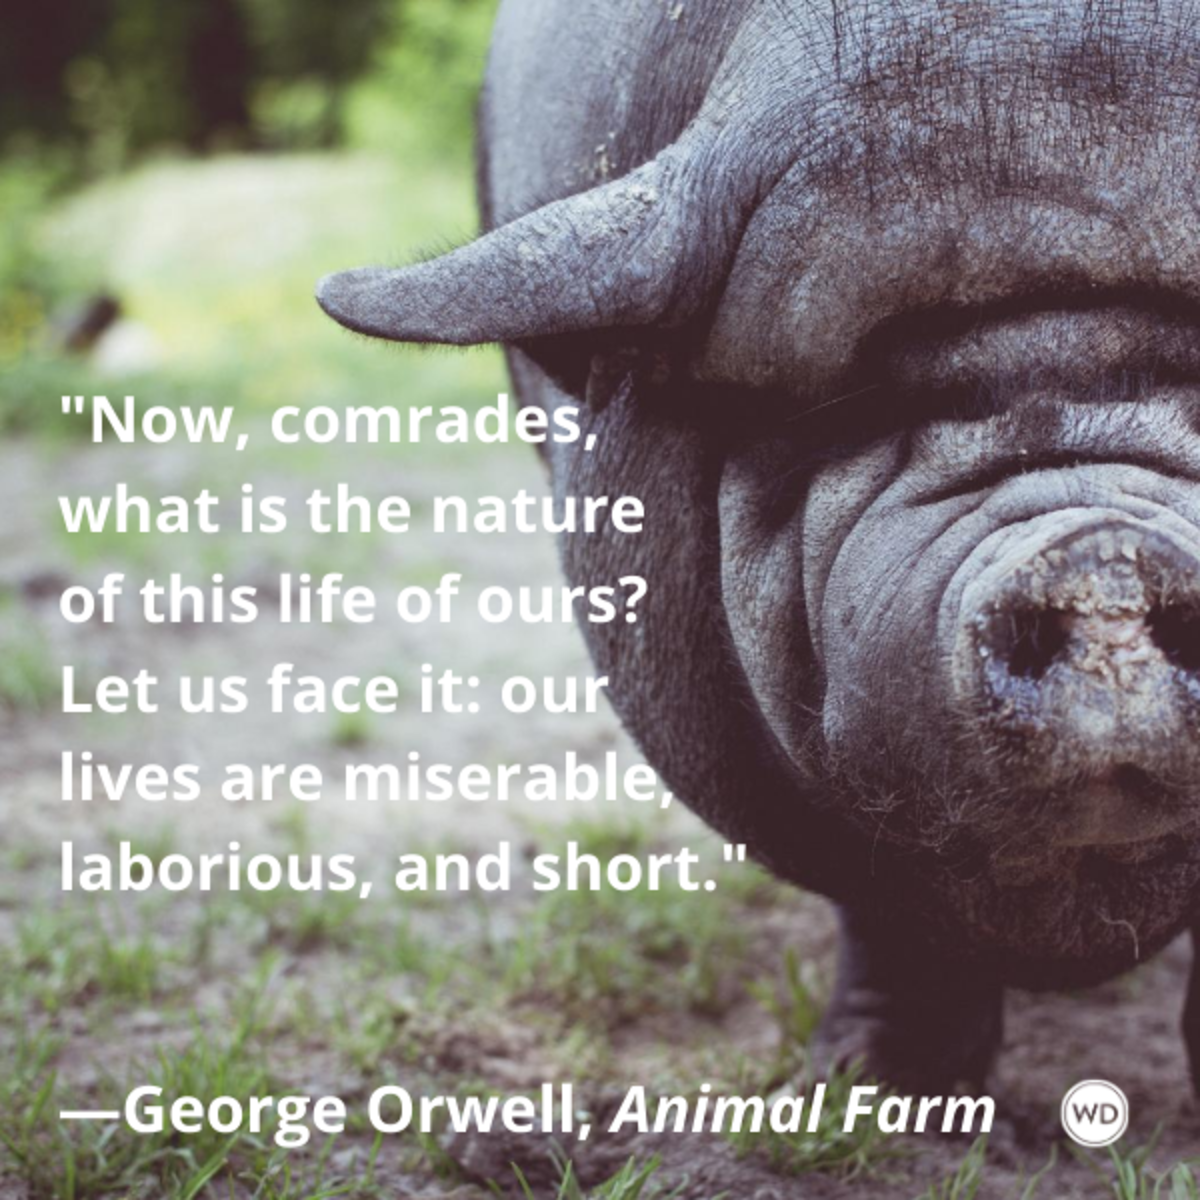 animal_farm_quotes_by_george_orwell_now_comrades_what_is_the_nature_of_this_life_of_ours